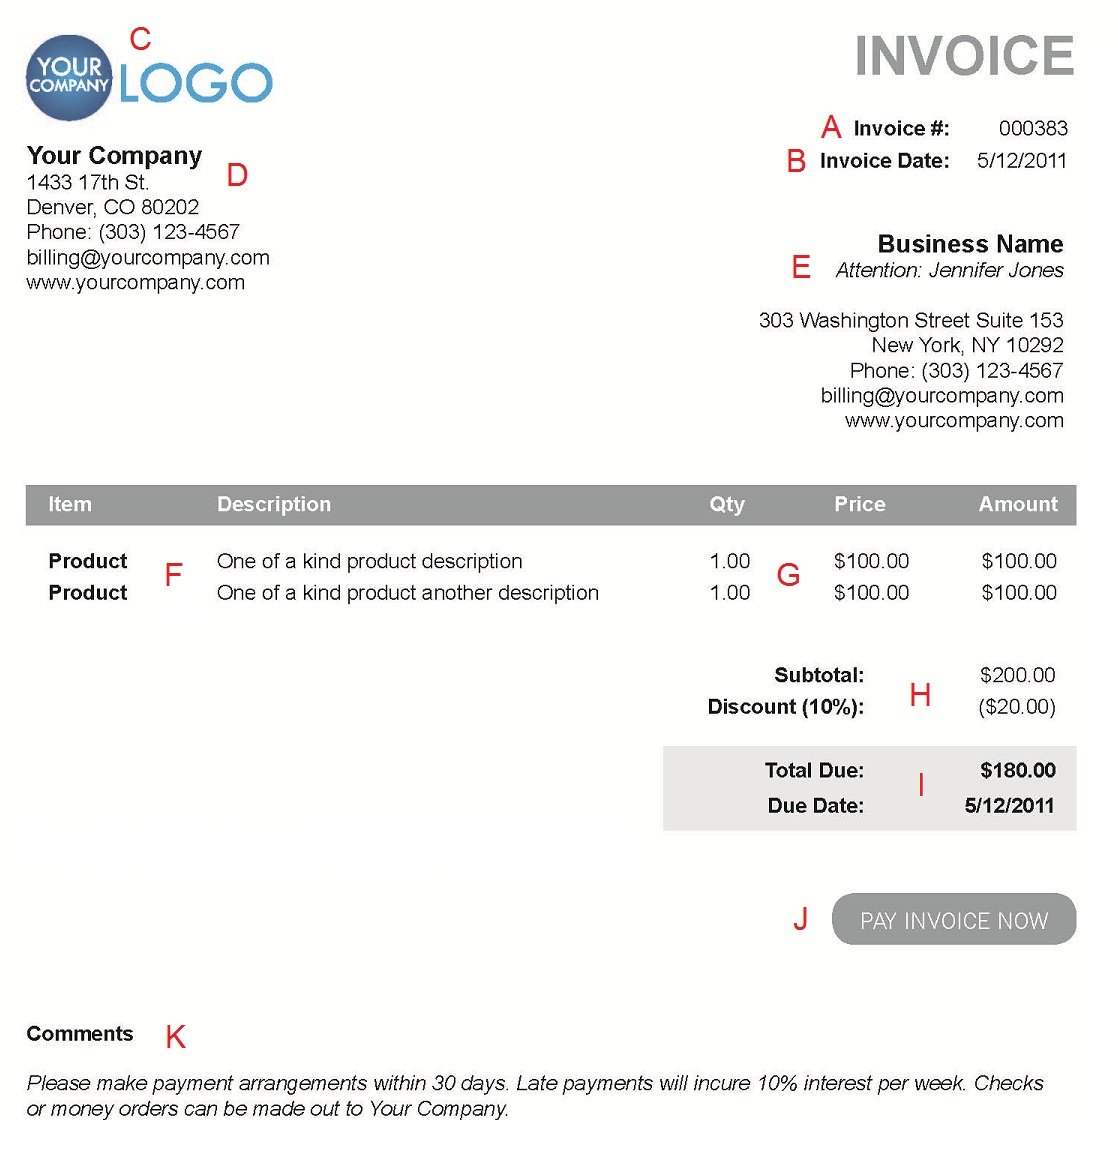 Atvingus  Inspiring The  Different Sections Of An Electronic Payment Invoice With Great A  With Appealing Bookkeeping Invoice Also Tax Invoice Example In Addition Overdue Invoices Letter And Requirements Of Tax Invoice As Well As Invoice Factoring Explained Additionally Invoicing Factoring From Paysimplecom With Atvingus  Great The  Different Sections Of An Electronic Payment Invoice With Appealing A  And Inspiring Bookkeeping Invoice Also Tax Invoice Example In Addition Overdue Invoices Letter From Paysimplecom